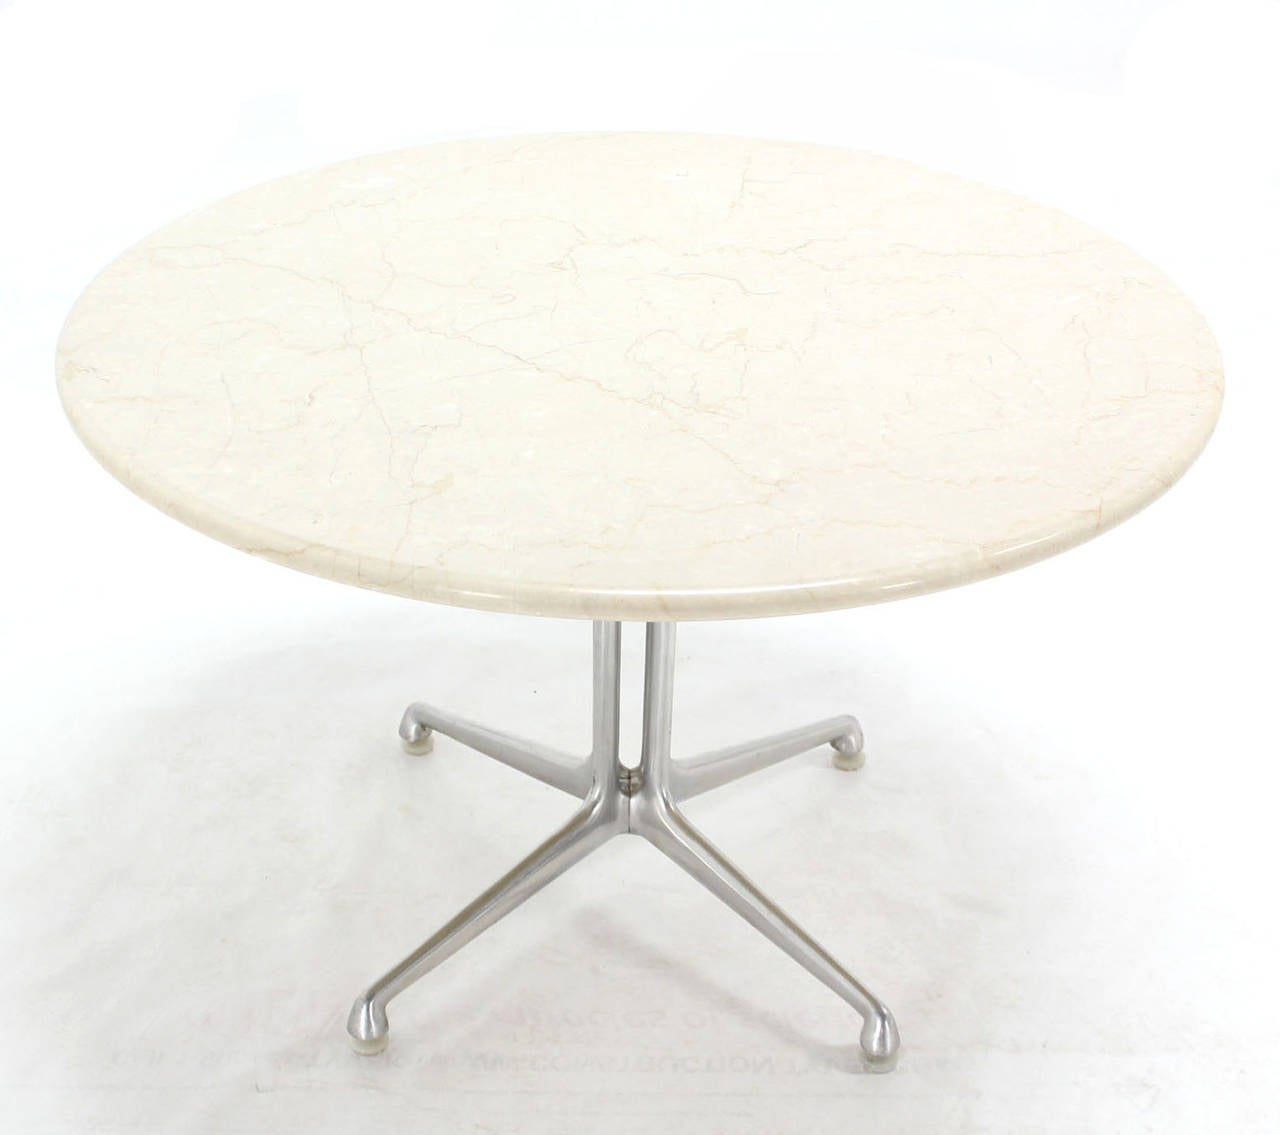 La fonda charles eames white marble top coffee table at for Eames style coffee table